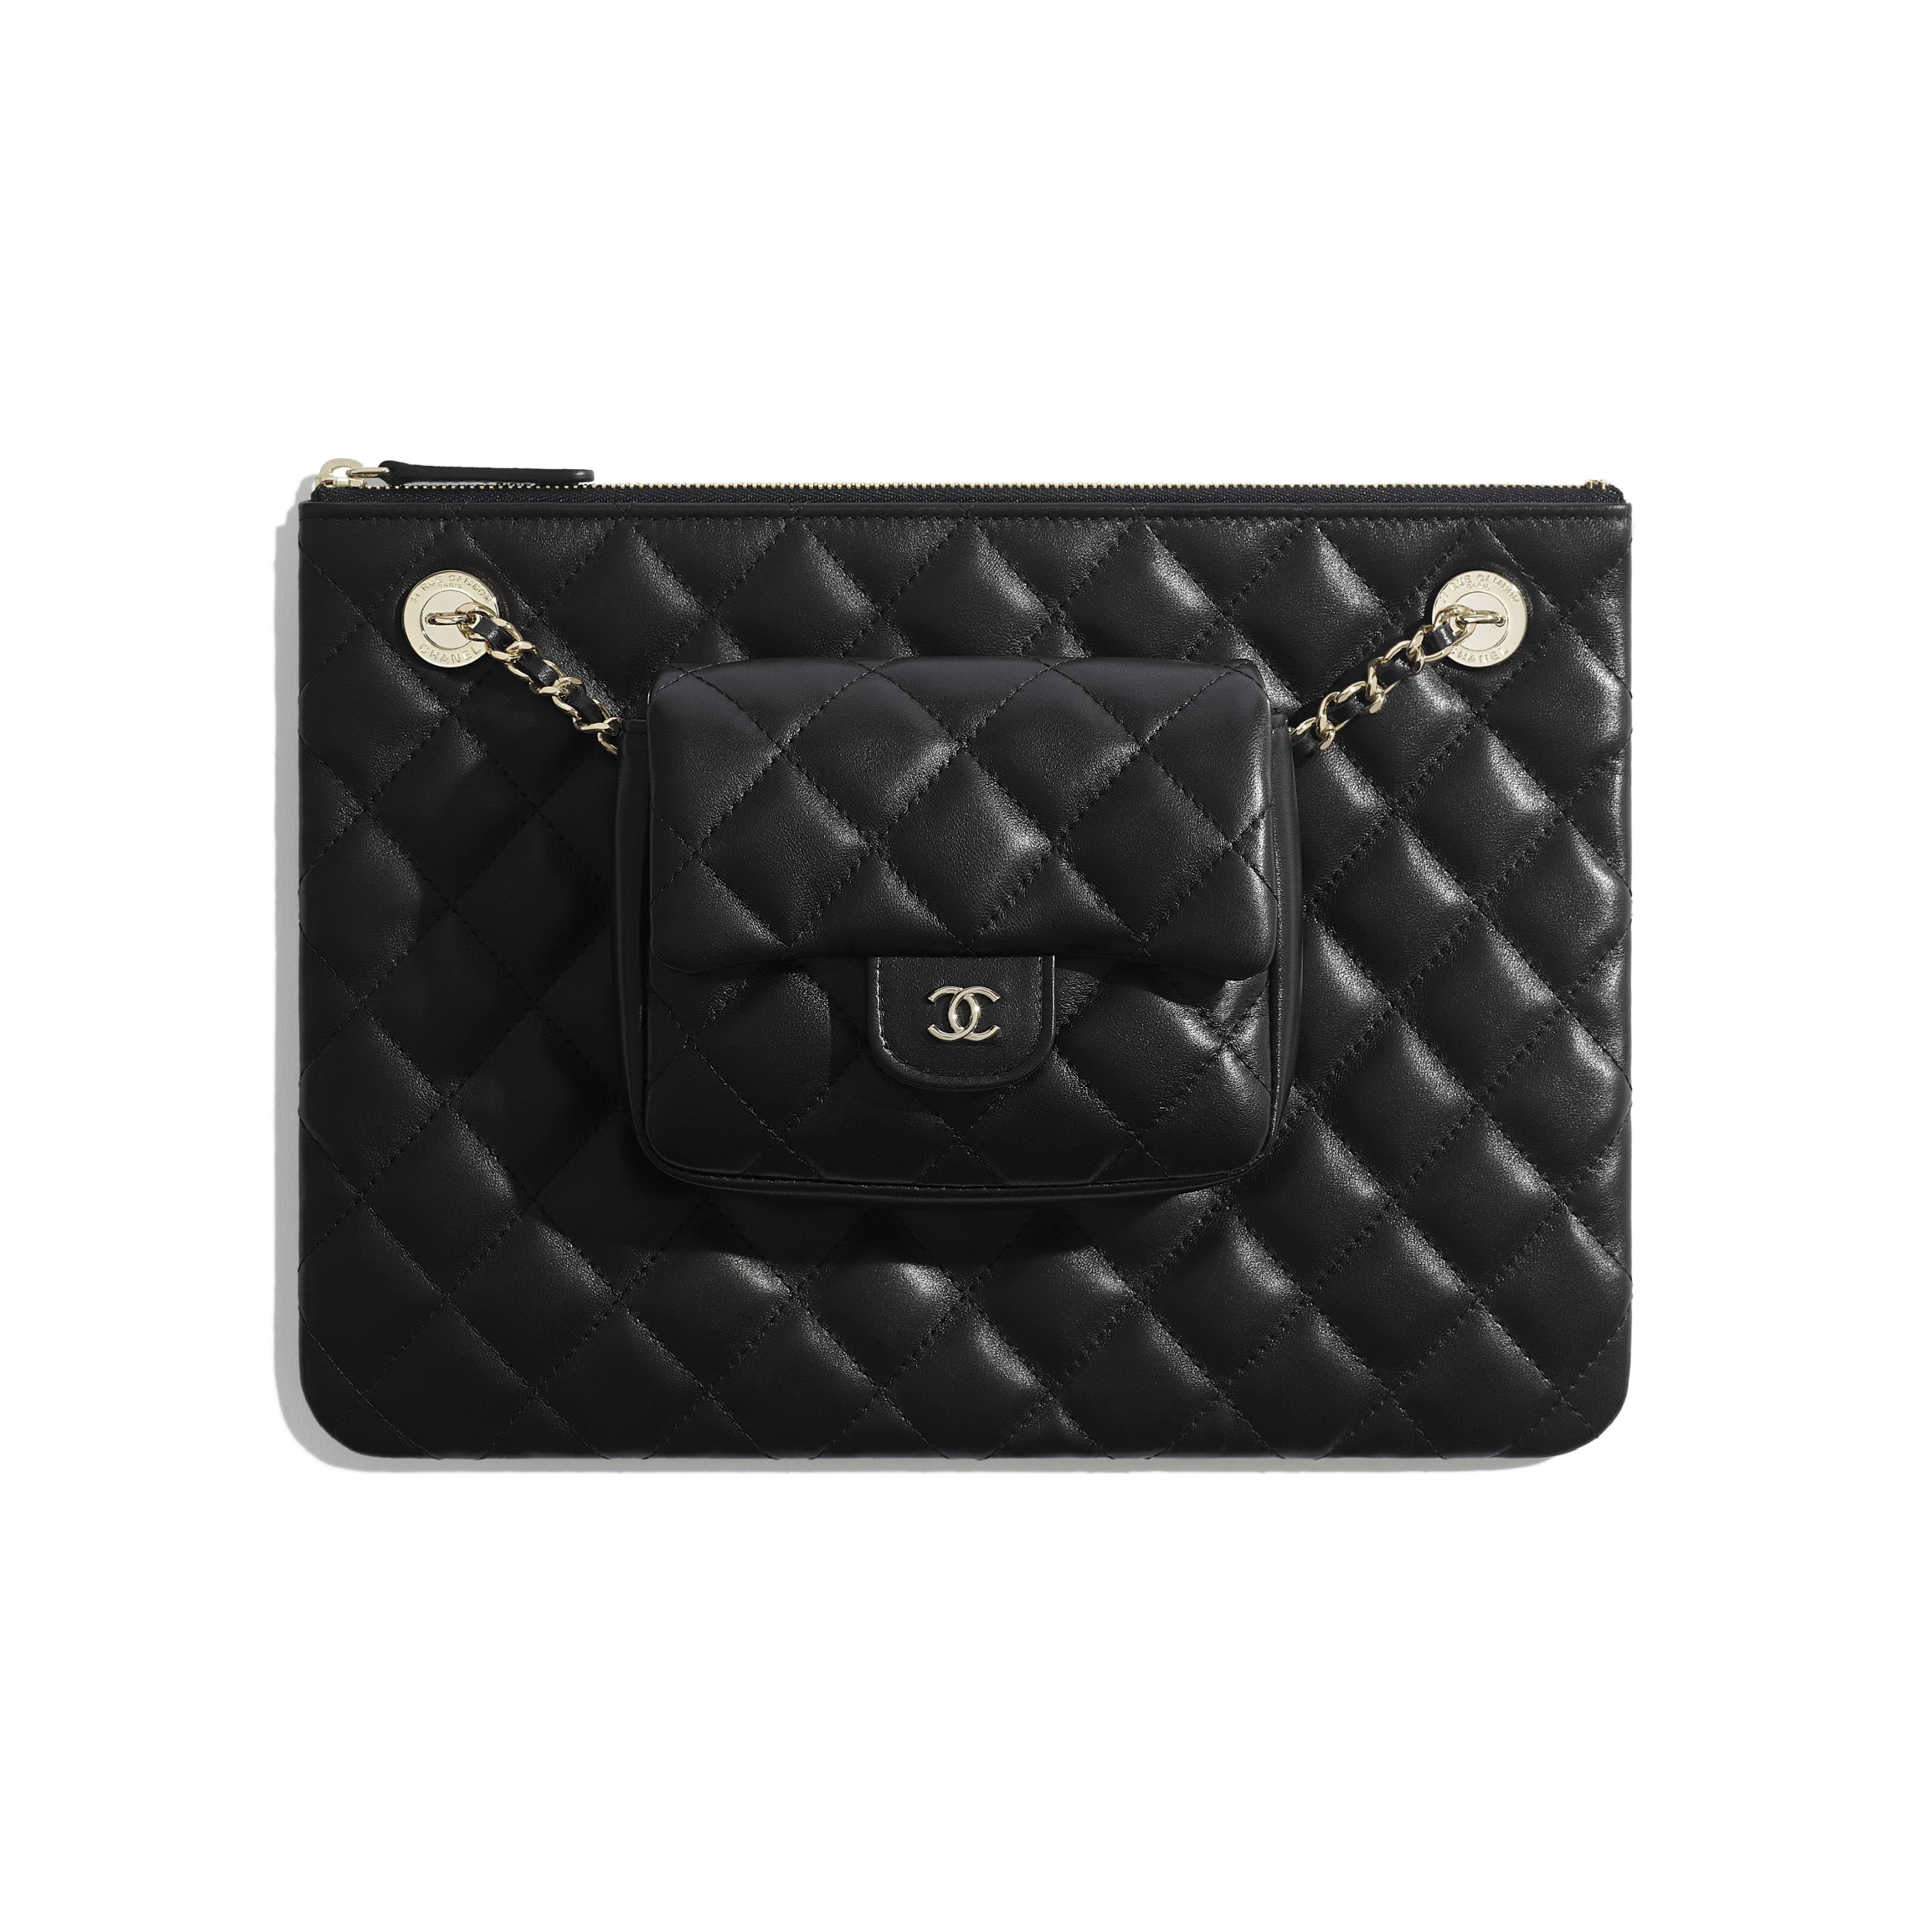 Pouch - Black - Lambskin - Default view - see full sized version